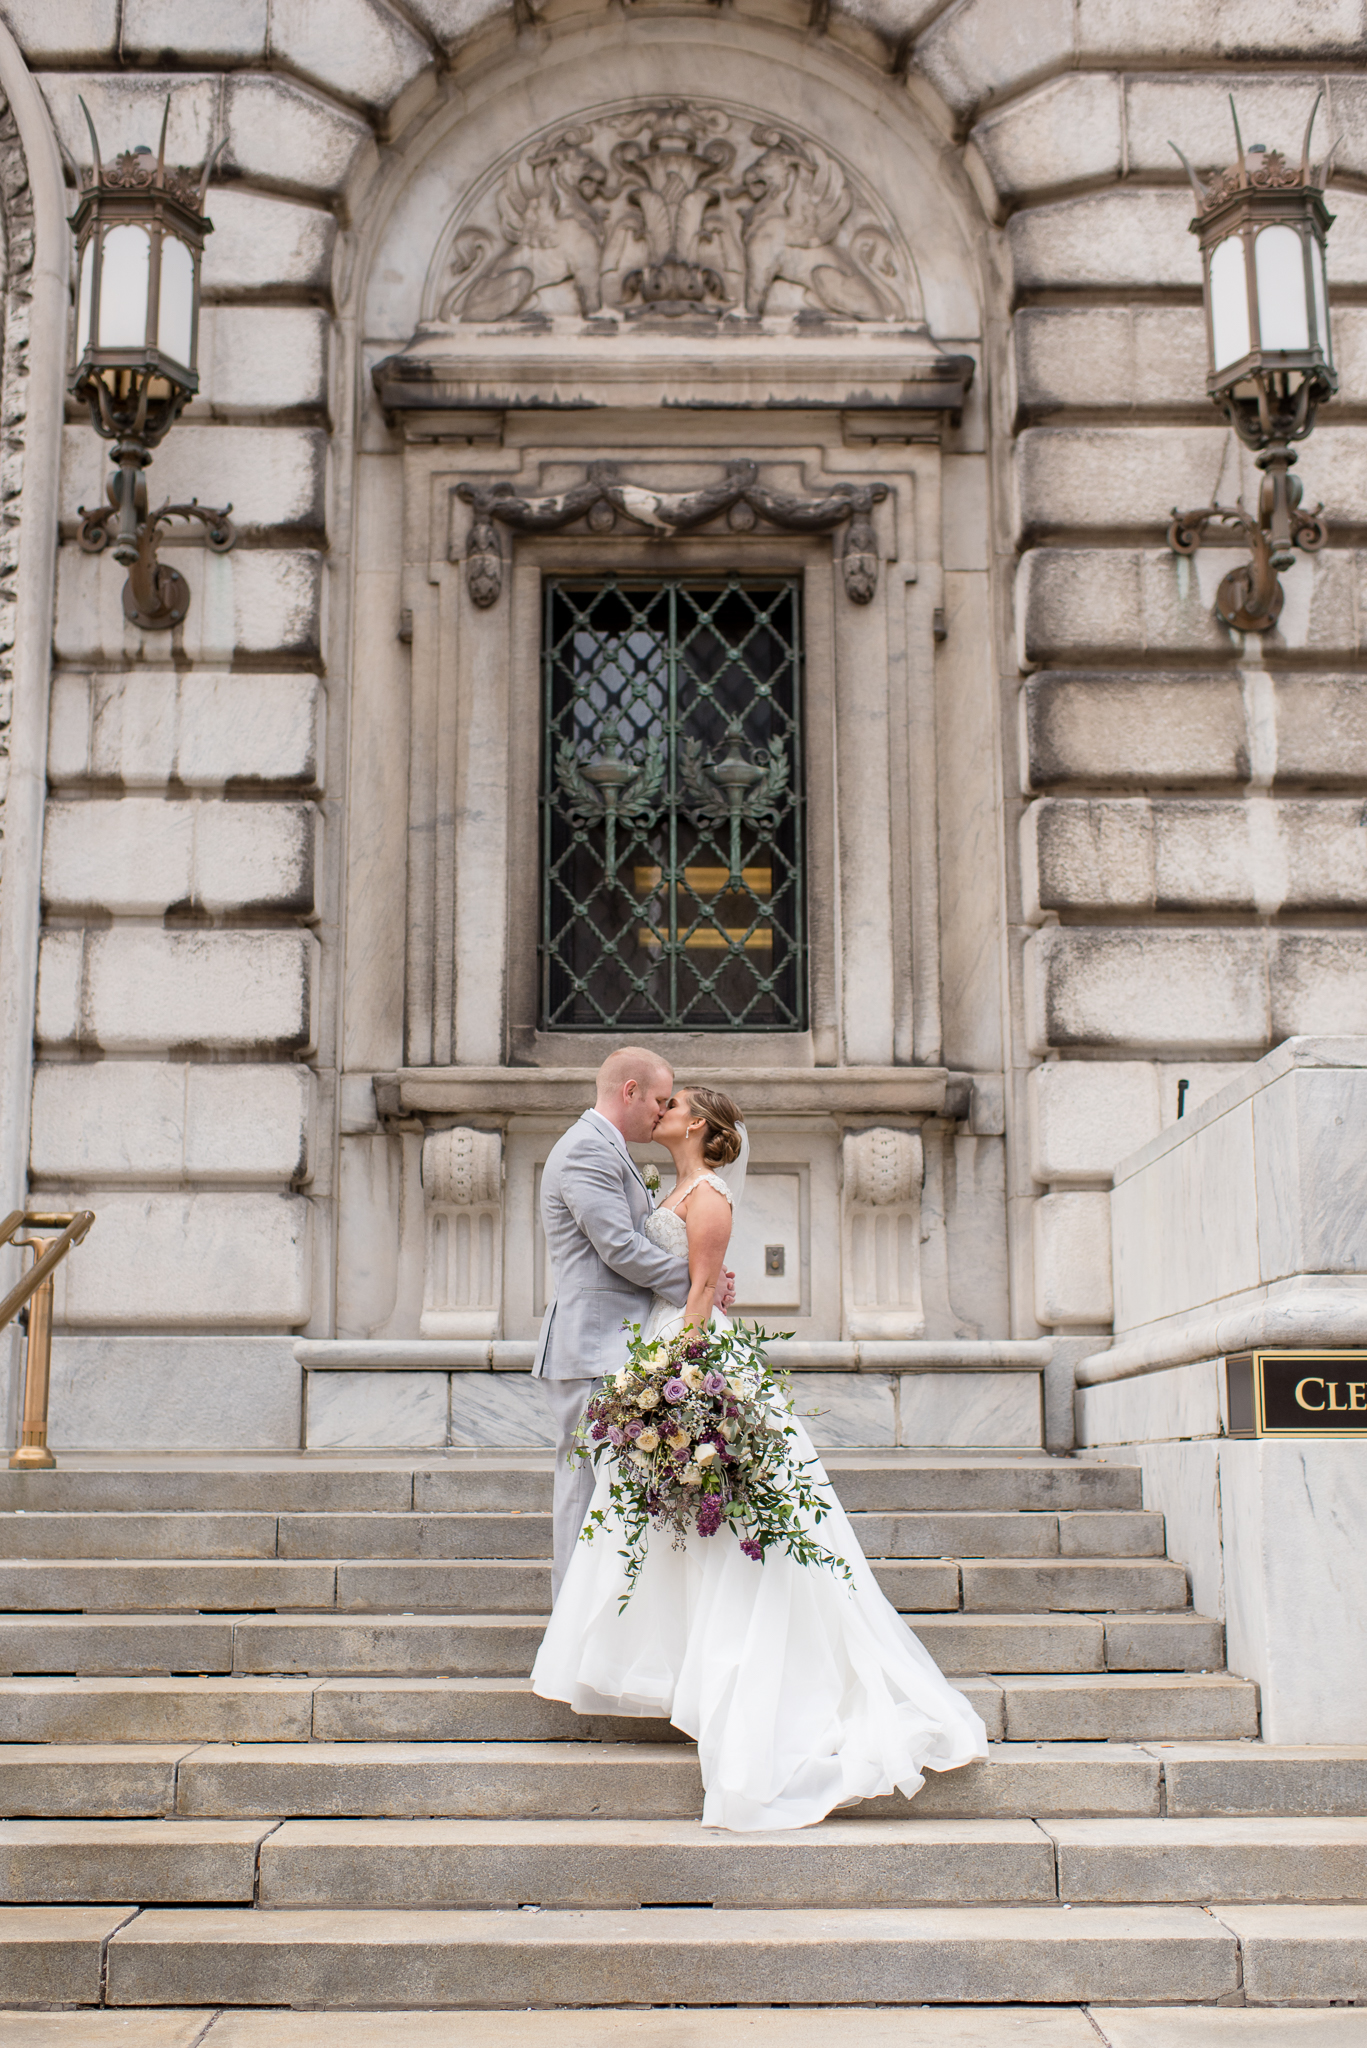 city-downtown-cleveland-public-library-wedding-photos-138